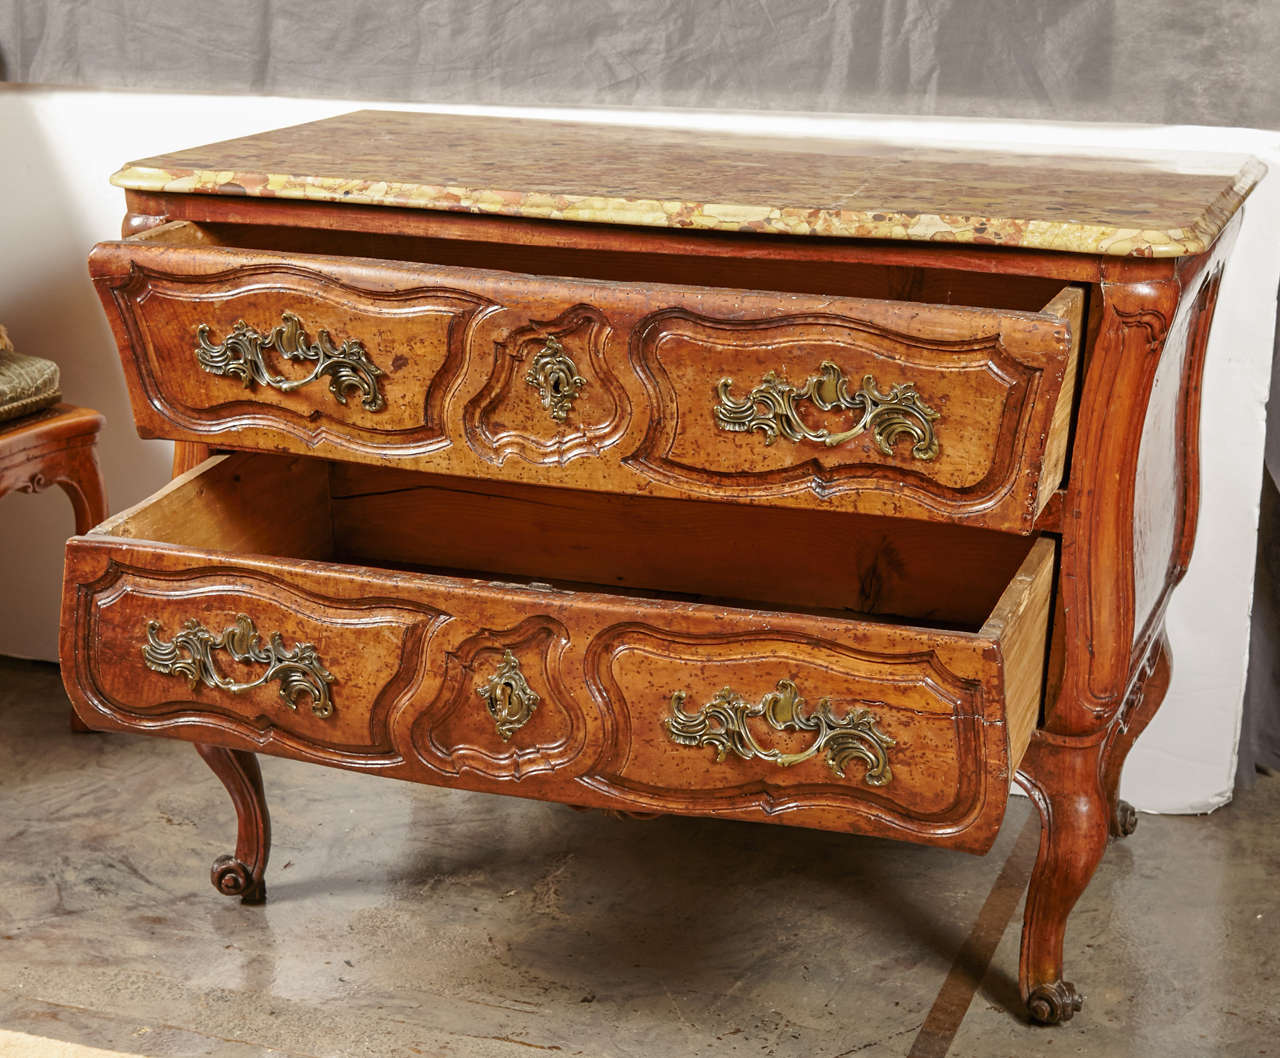 18th Century French, Walnut Marble Top Commode In Excellent Condition For Sale In Dallas, TX